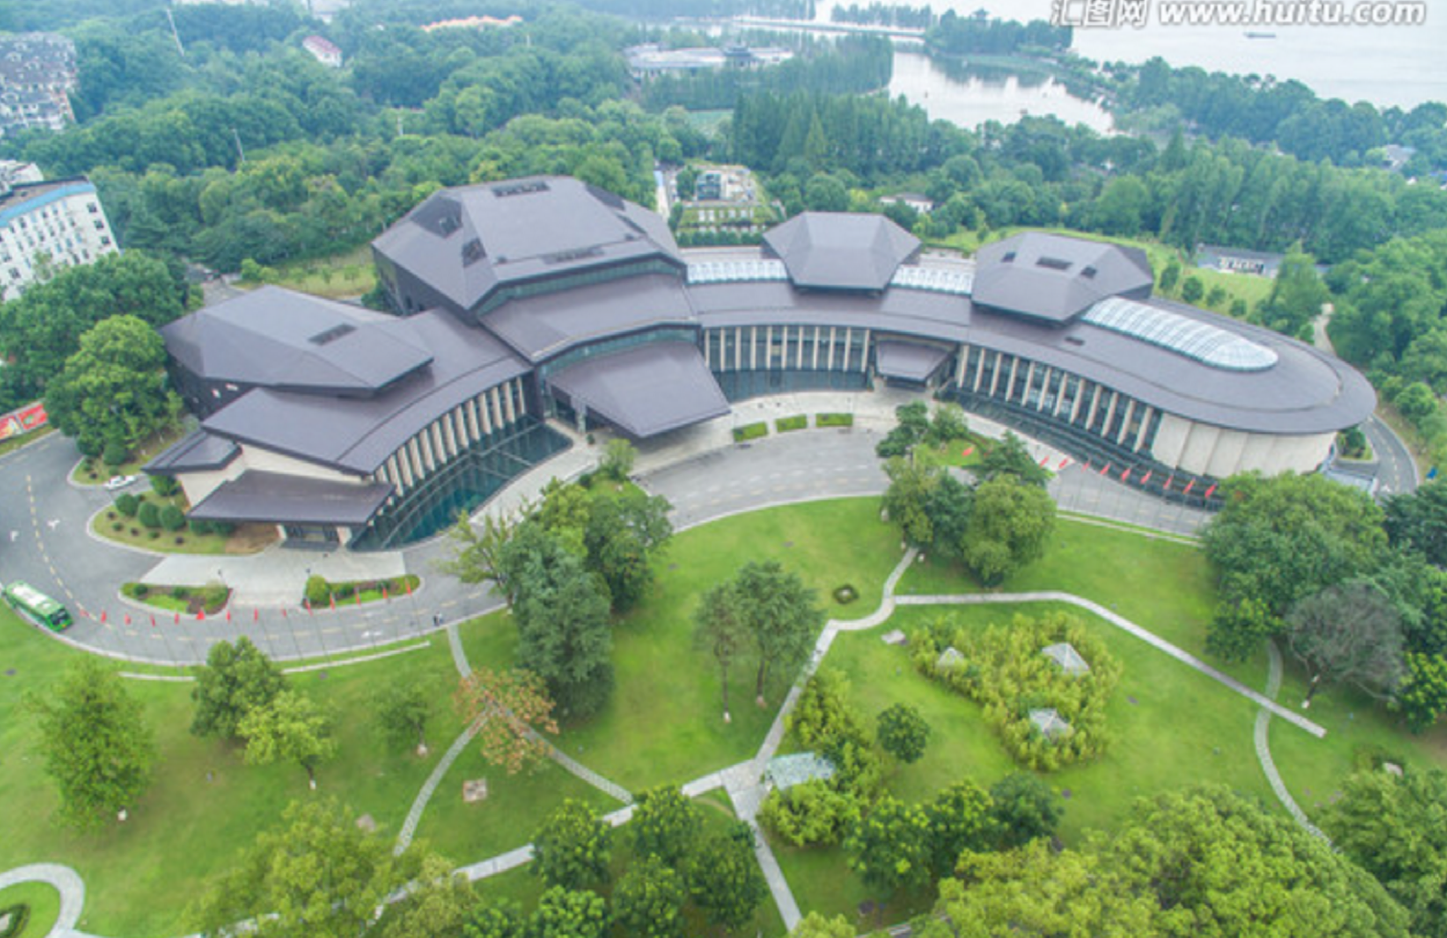 East_Lake_Intl_Conference_Center_Aerial.png